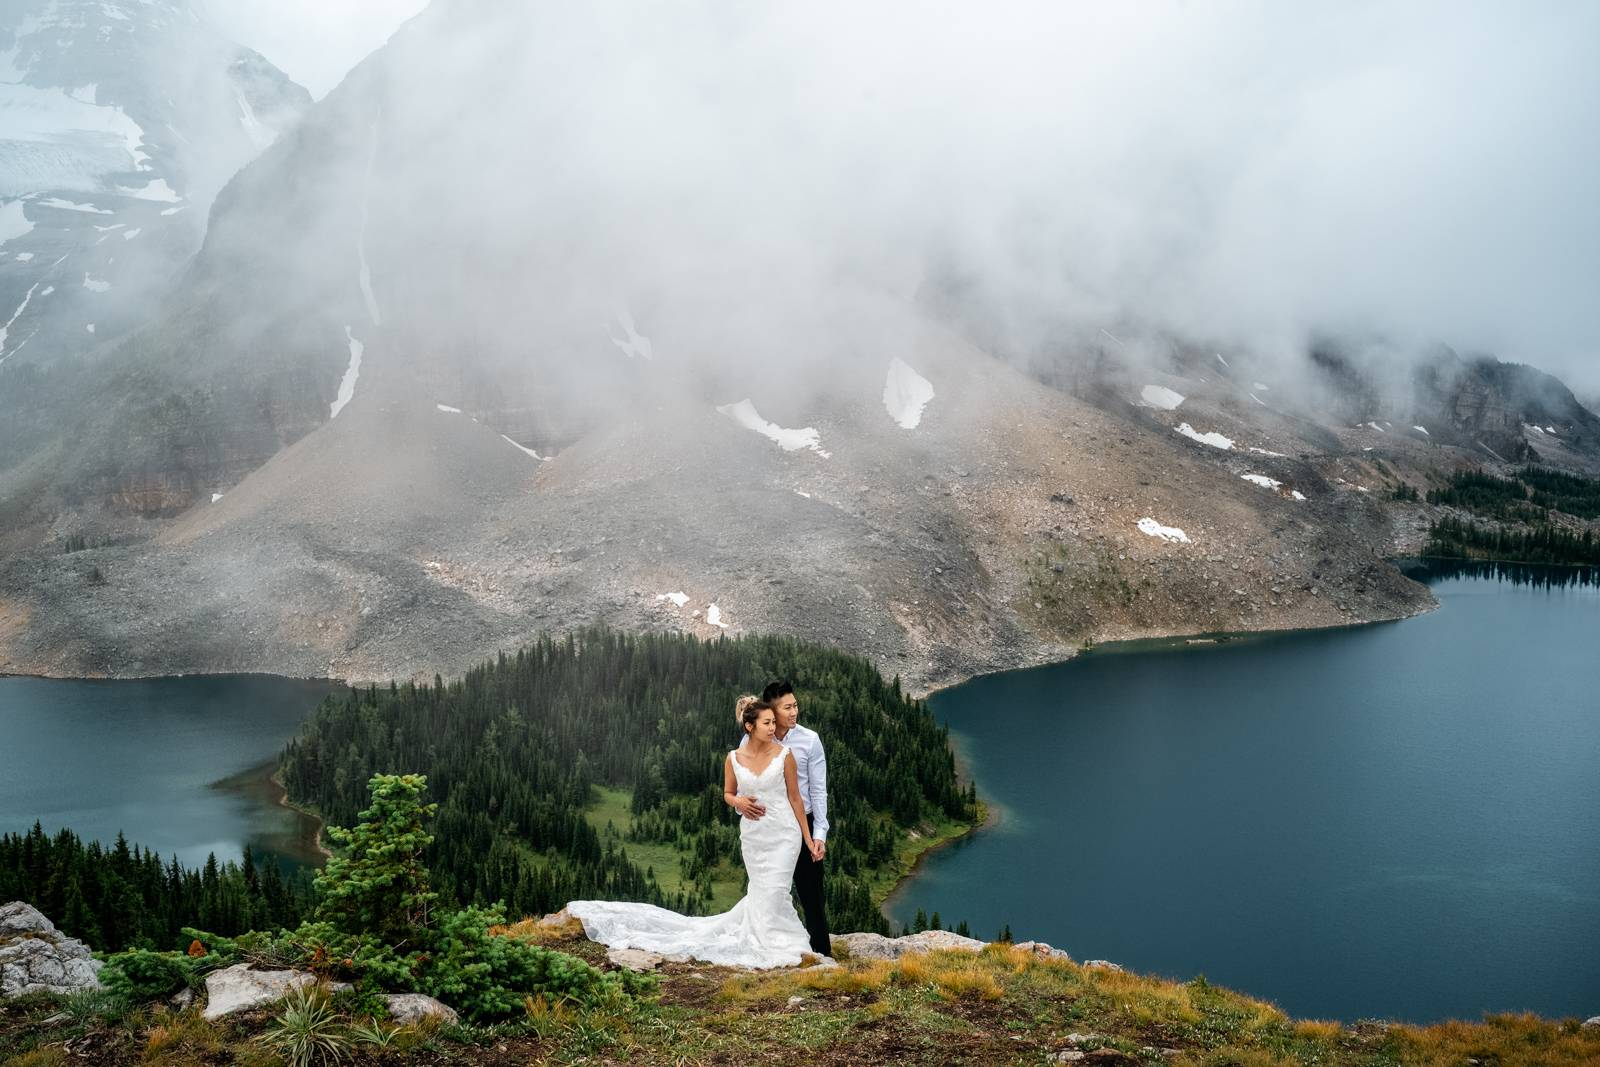 Backpacking wedding